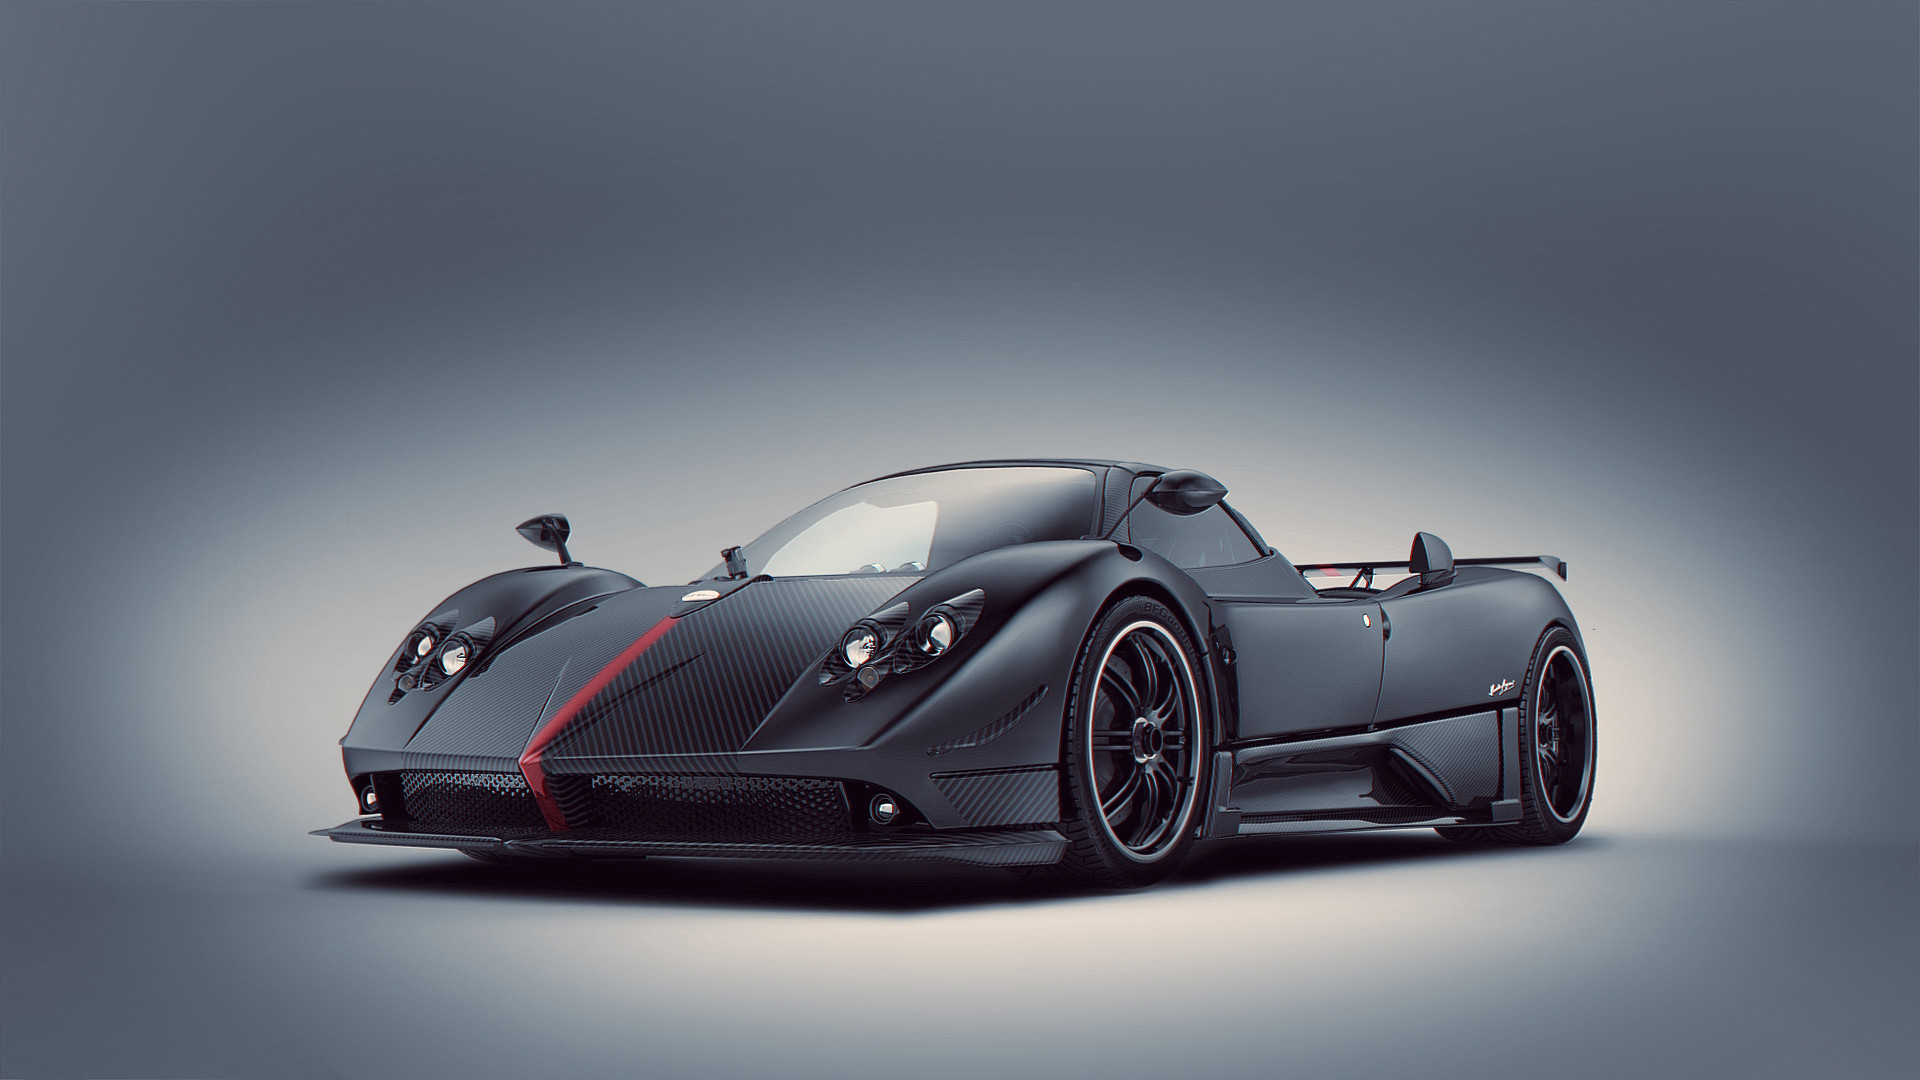 1920x1080 Black and Red Pagani Zonda R - HD Wallpaper